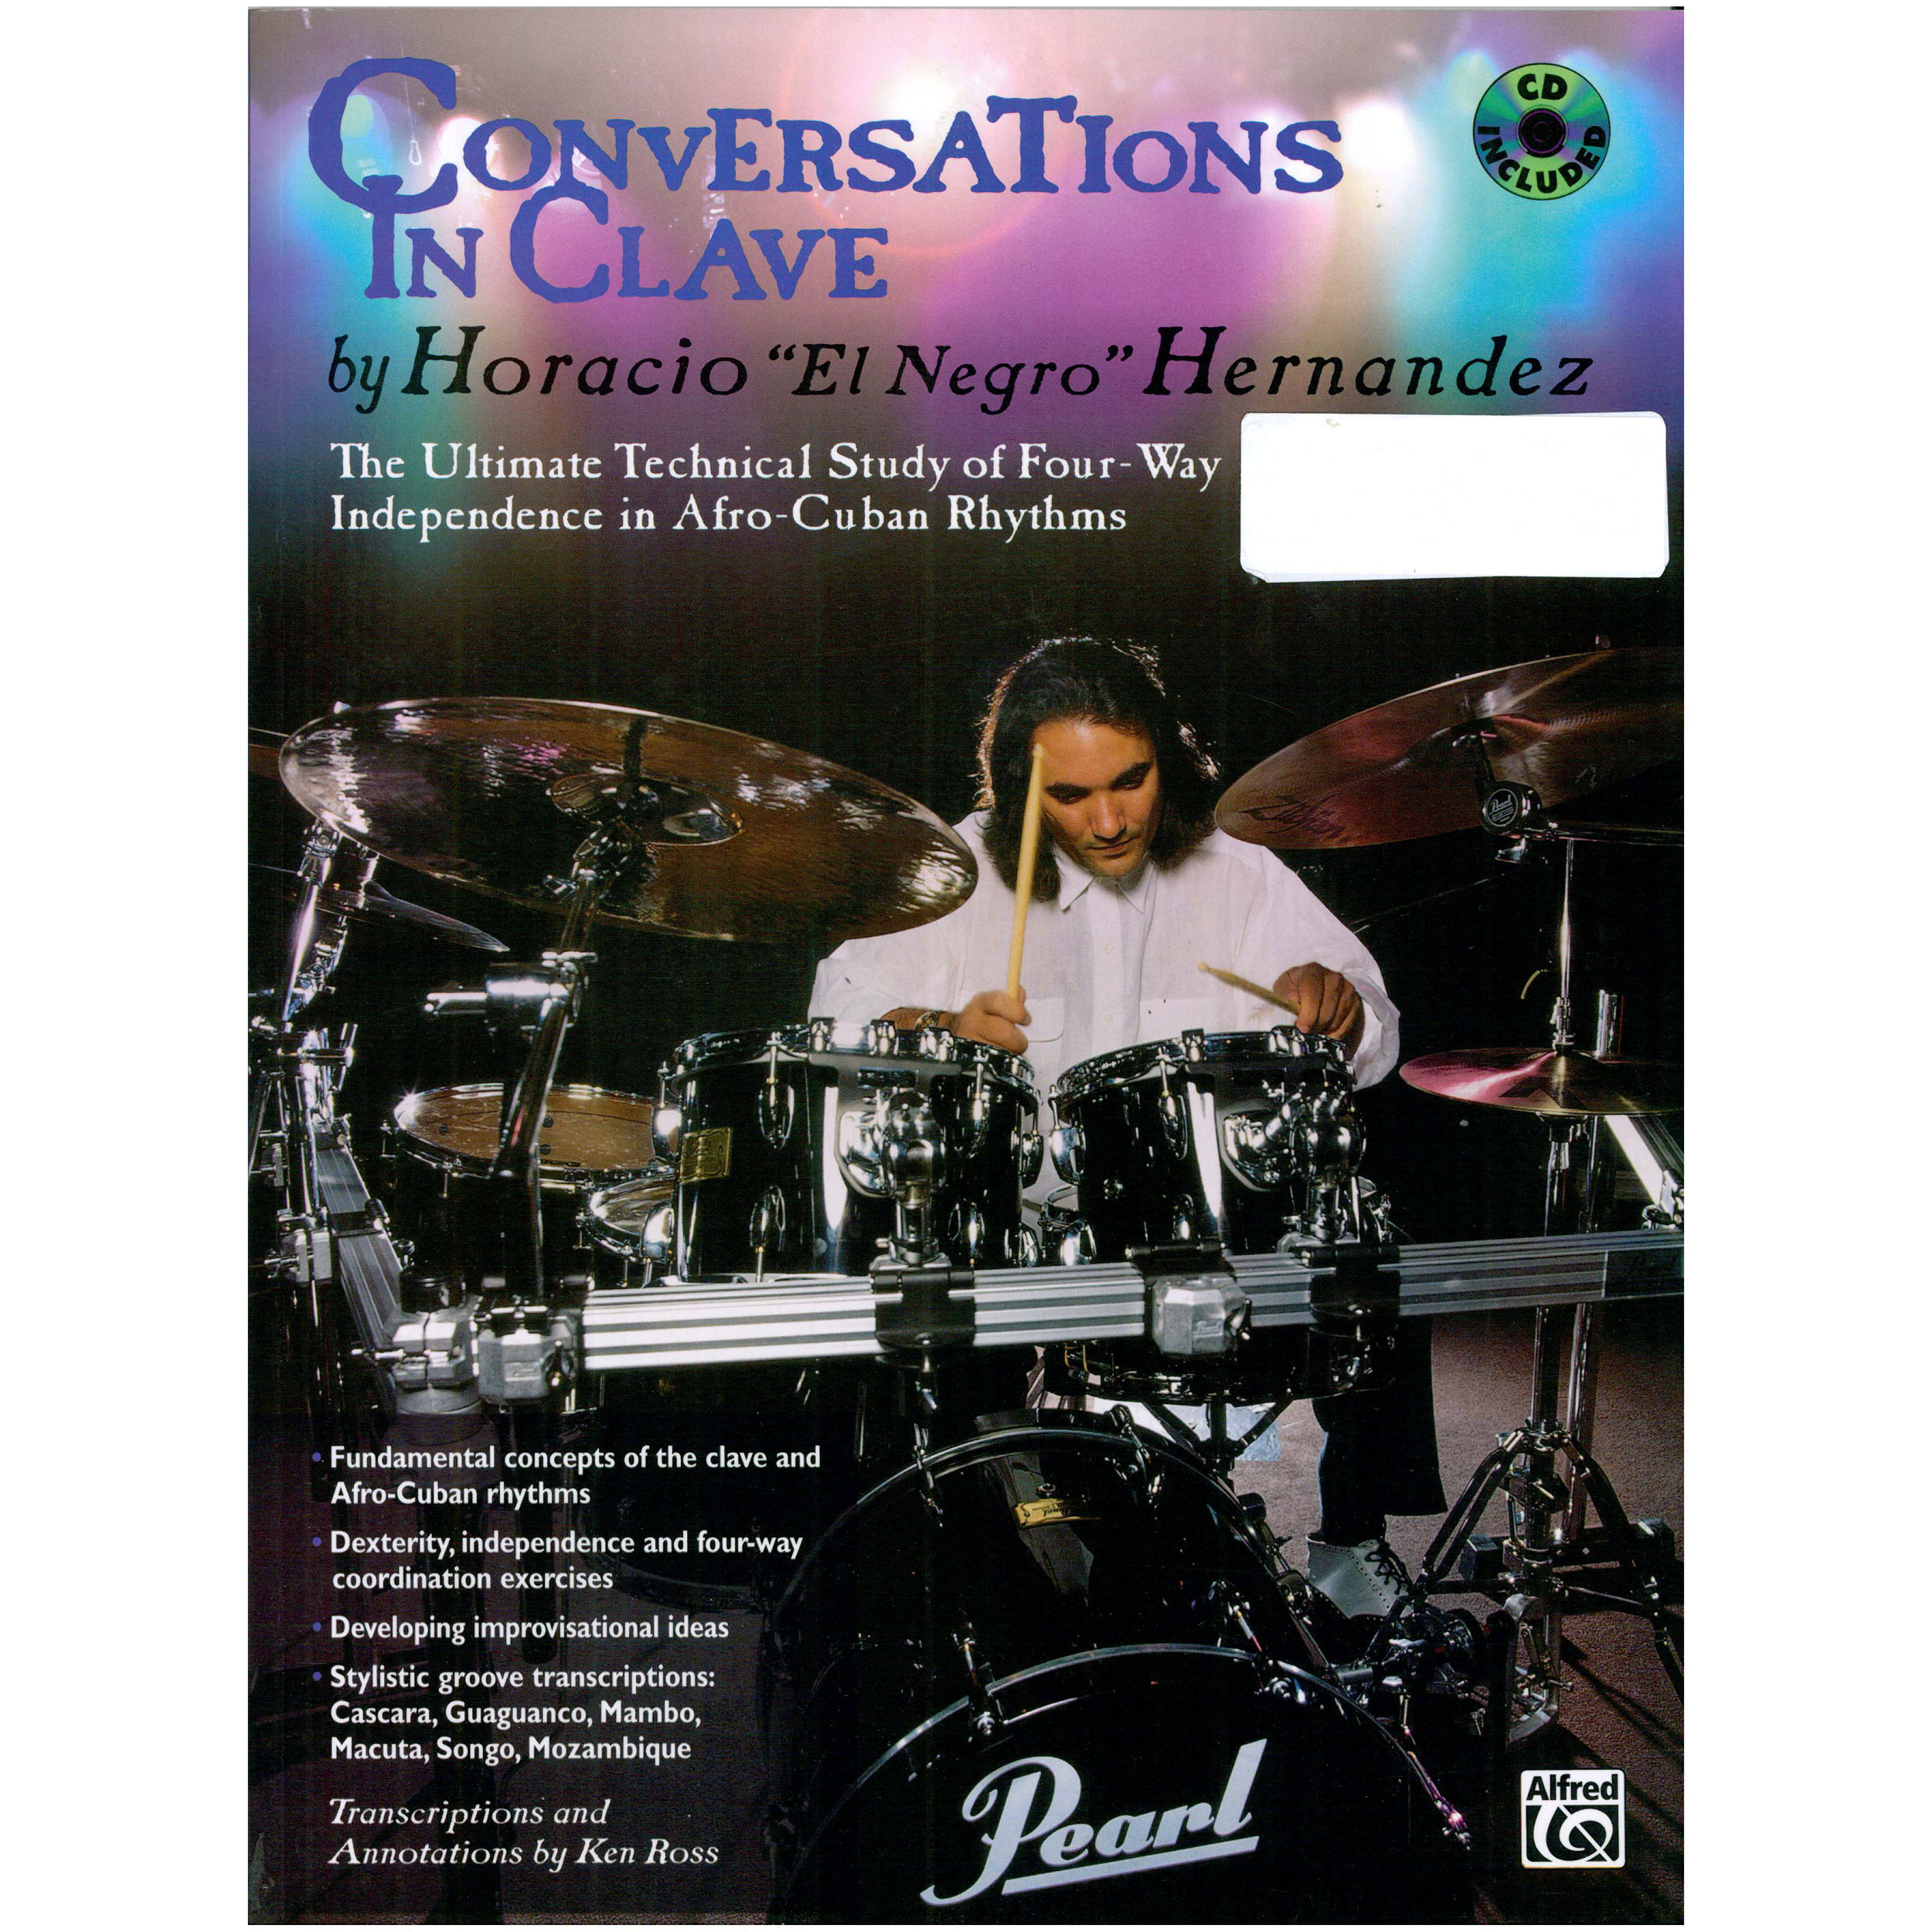 Conversations in Clave by Horacio